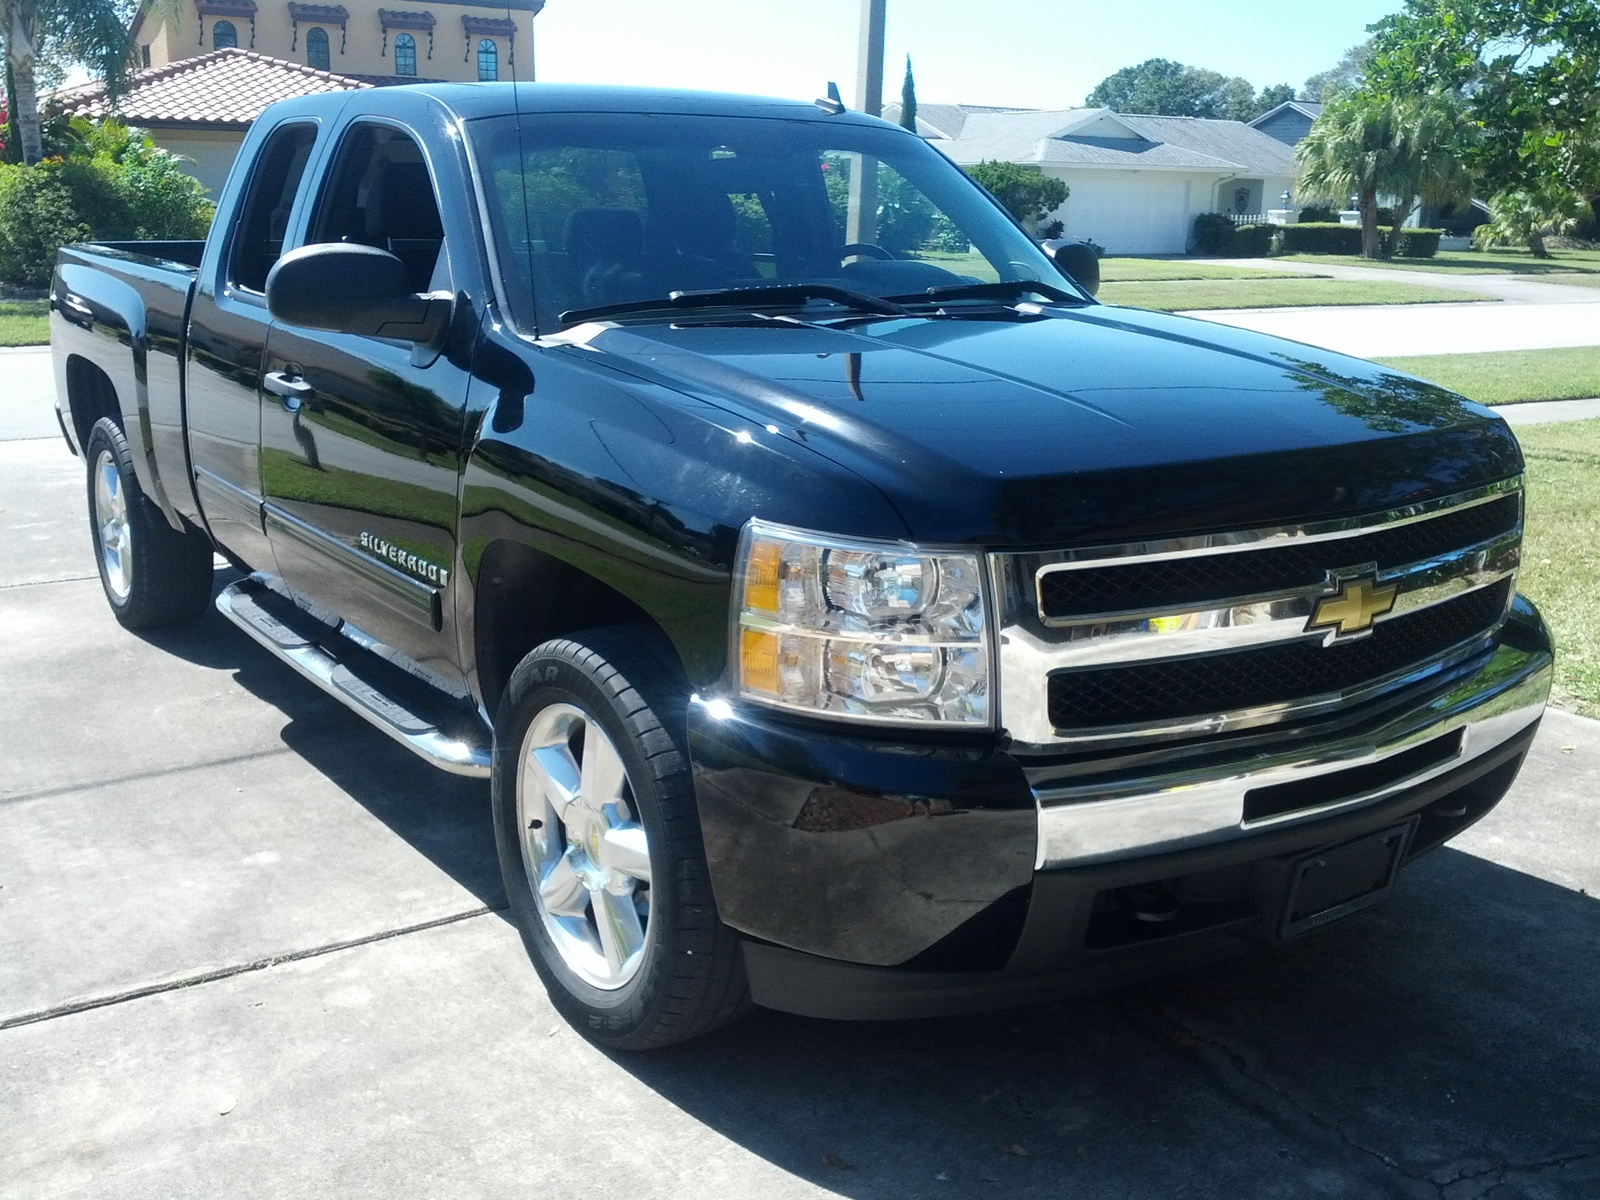 2009 chevrolet silverado 1500 pictures cargurus. Black Bedroom Furniture Sets. Home Design Ideas